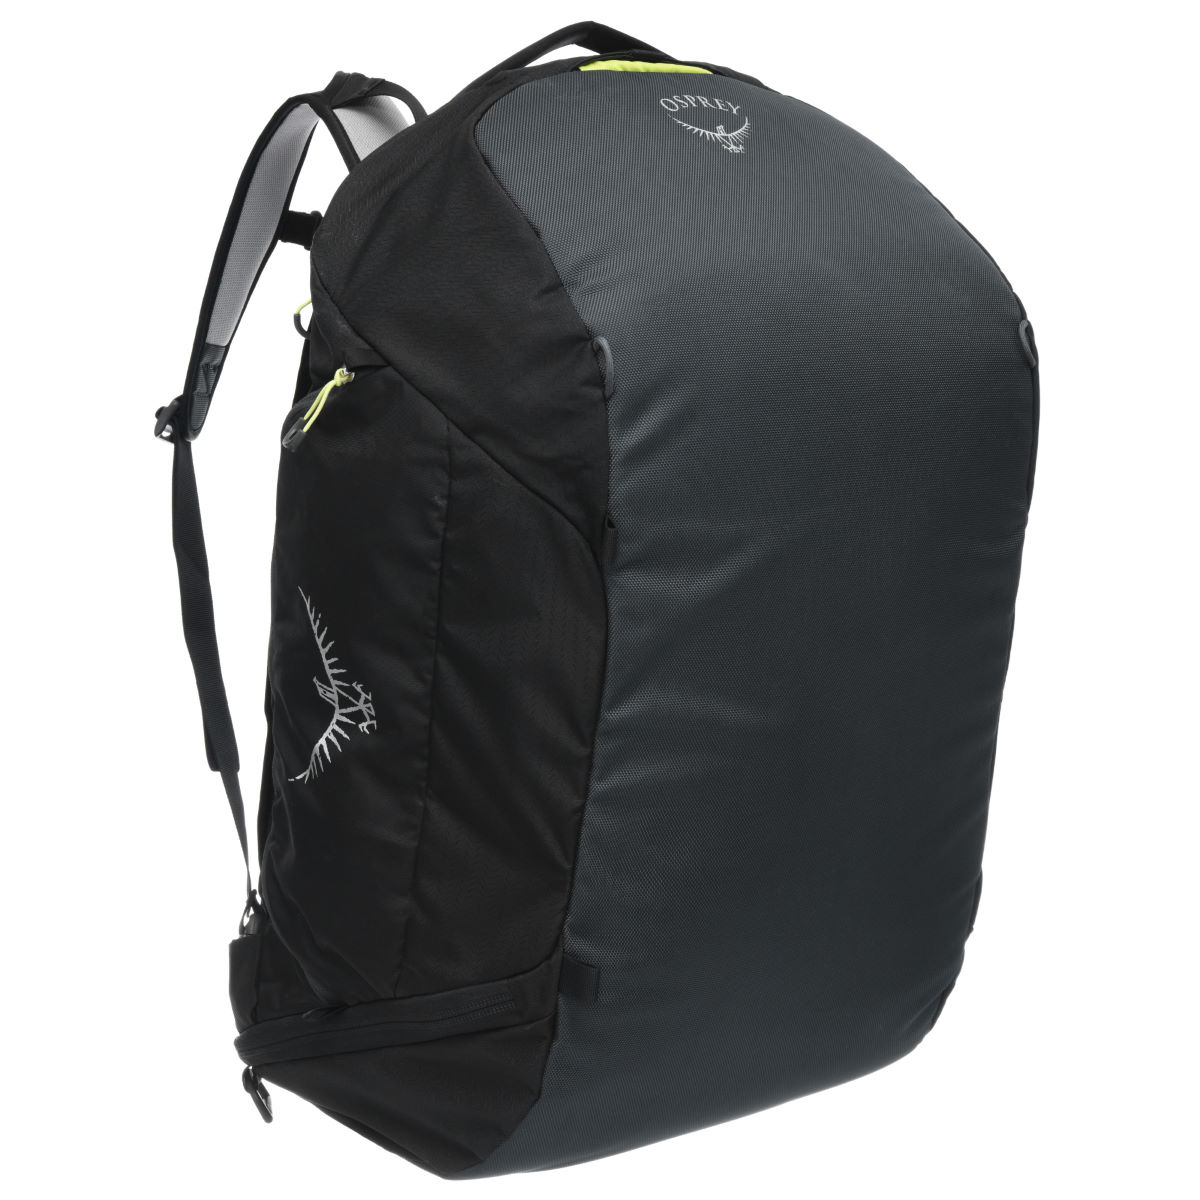 Osprey Osprey Bigkit Triathlon Transition Bag (Exclusive)   Duffle Bags